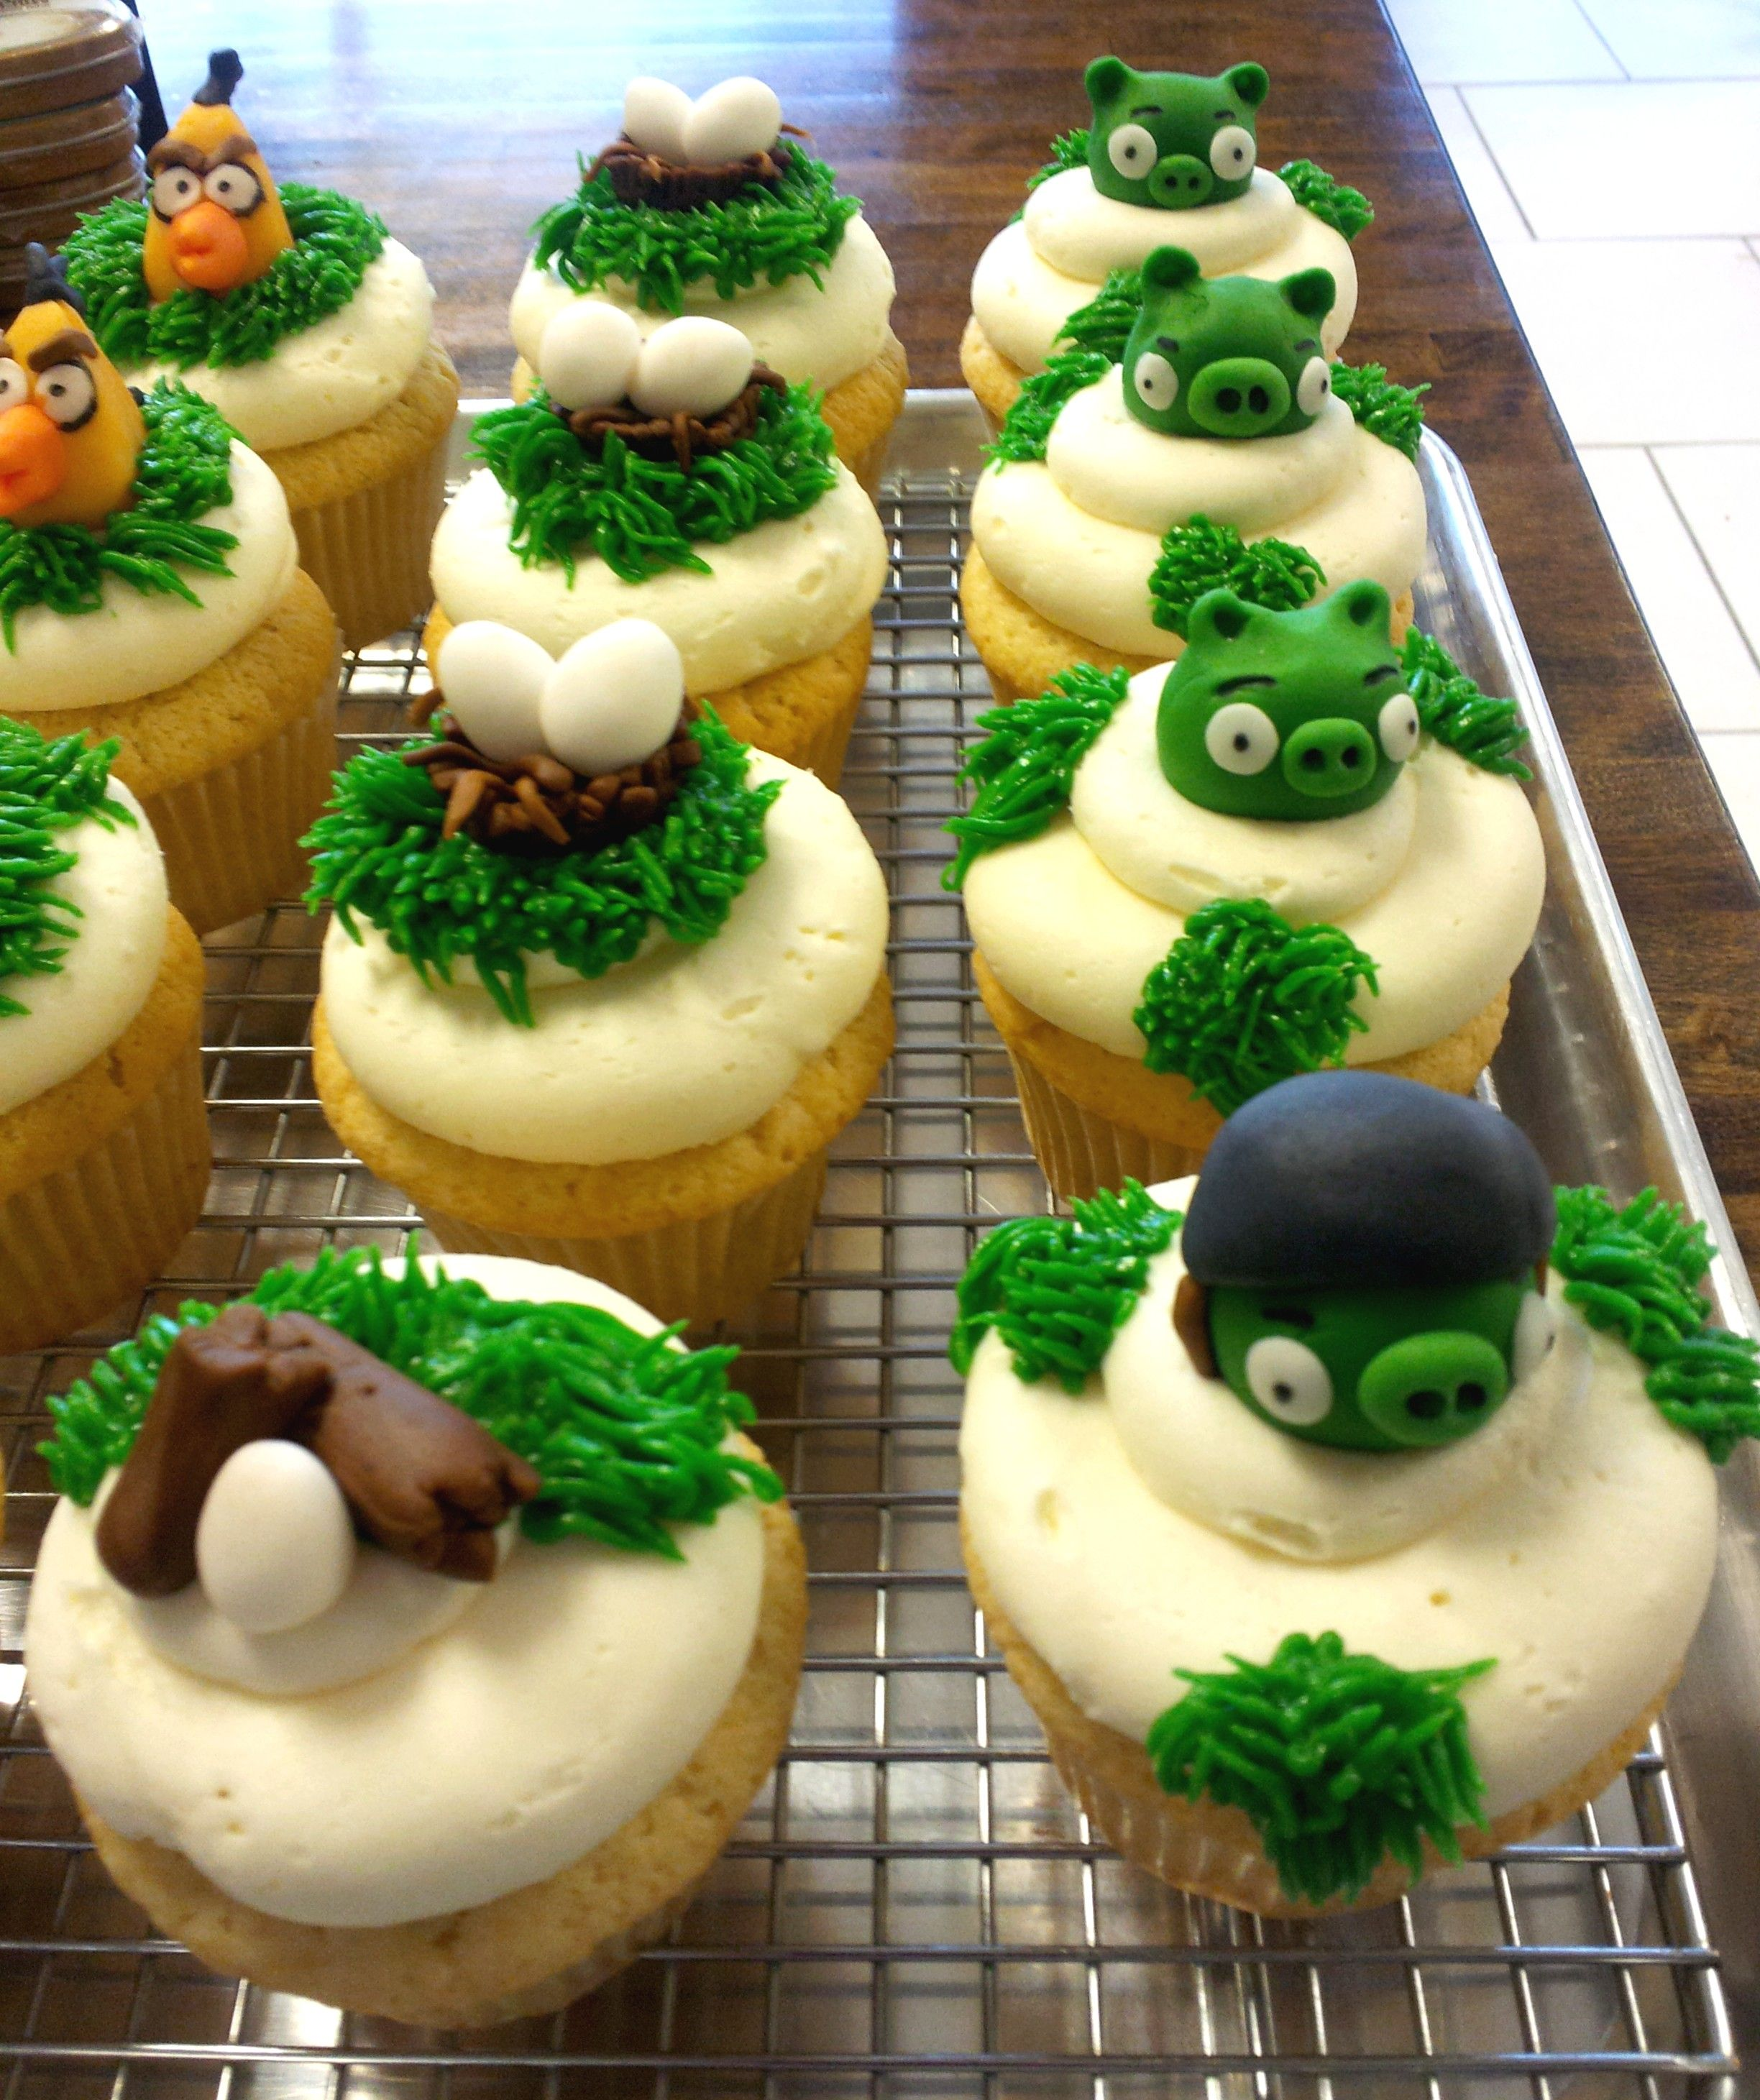 Angry Birds cupcakes created by 350 Classic Bakeshop in Mamaroneck, NY